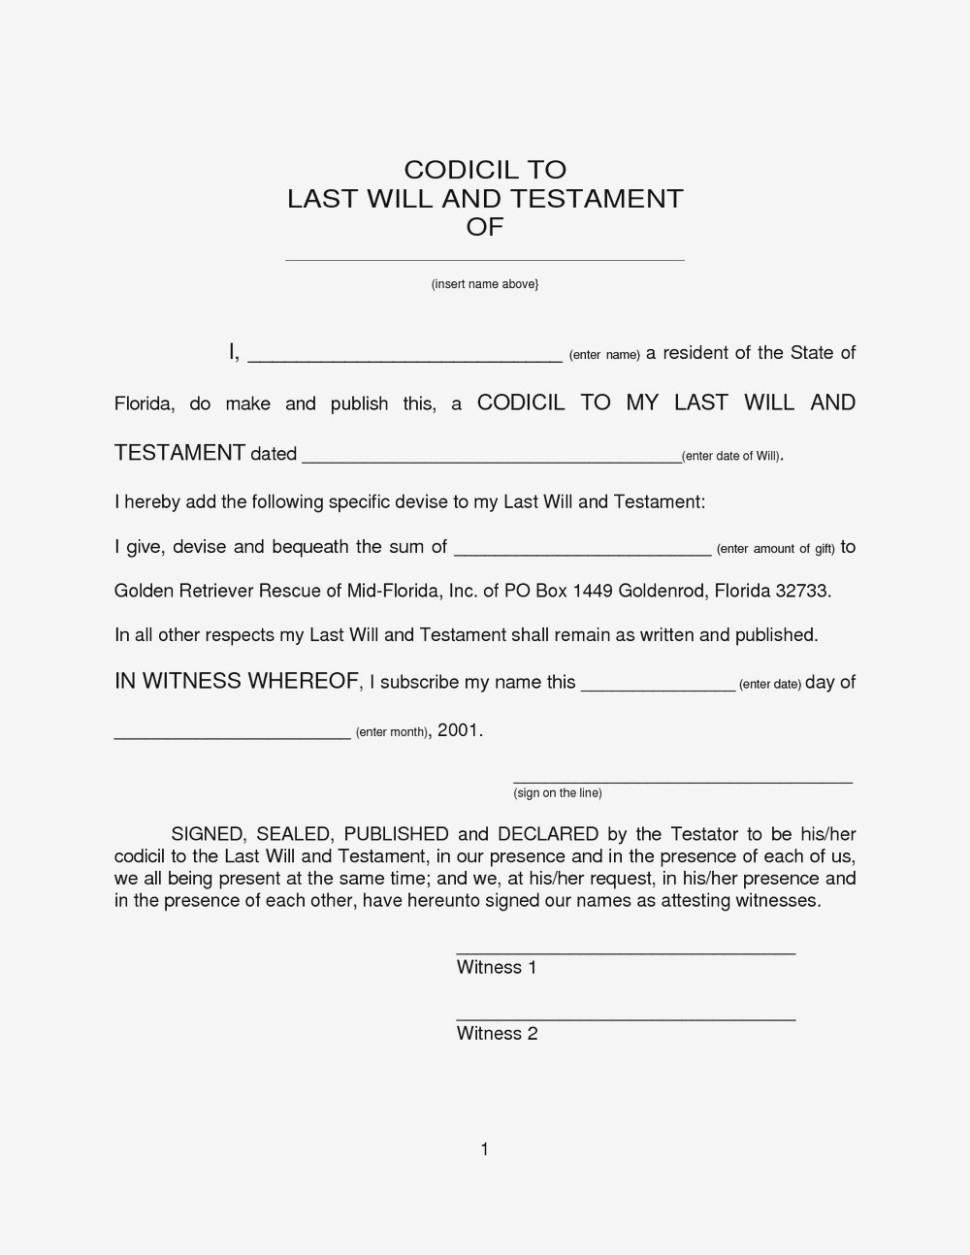 Free Printable Last Will And Testament Forms Nz | Resume Examples - Free Printable Last Will And Testament Forms